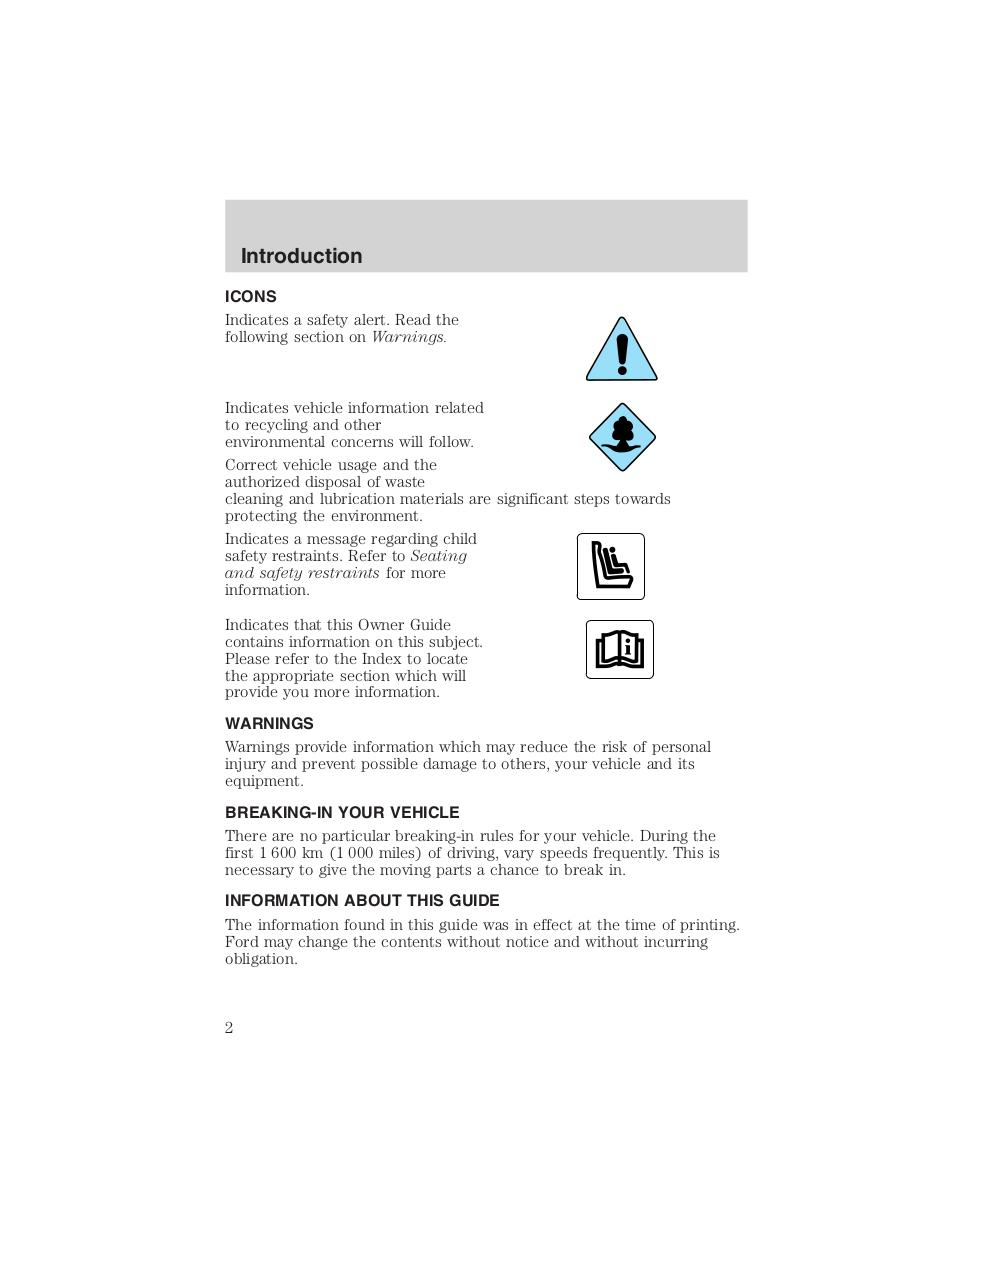 medium resolution of ford f53 1999 chassis owner manual pdf page 2 96